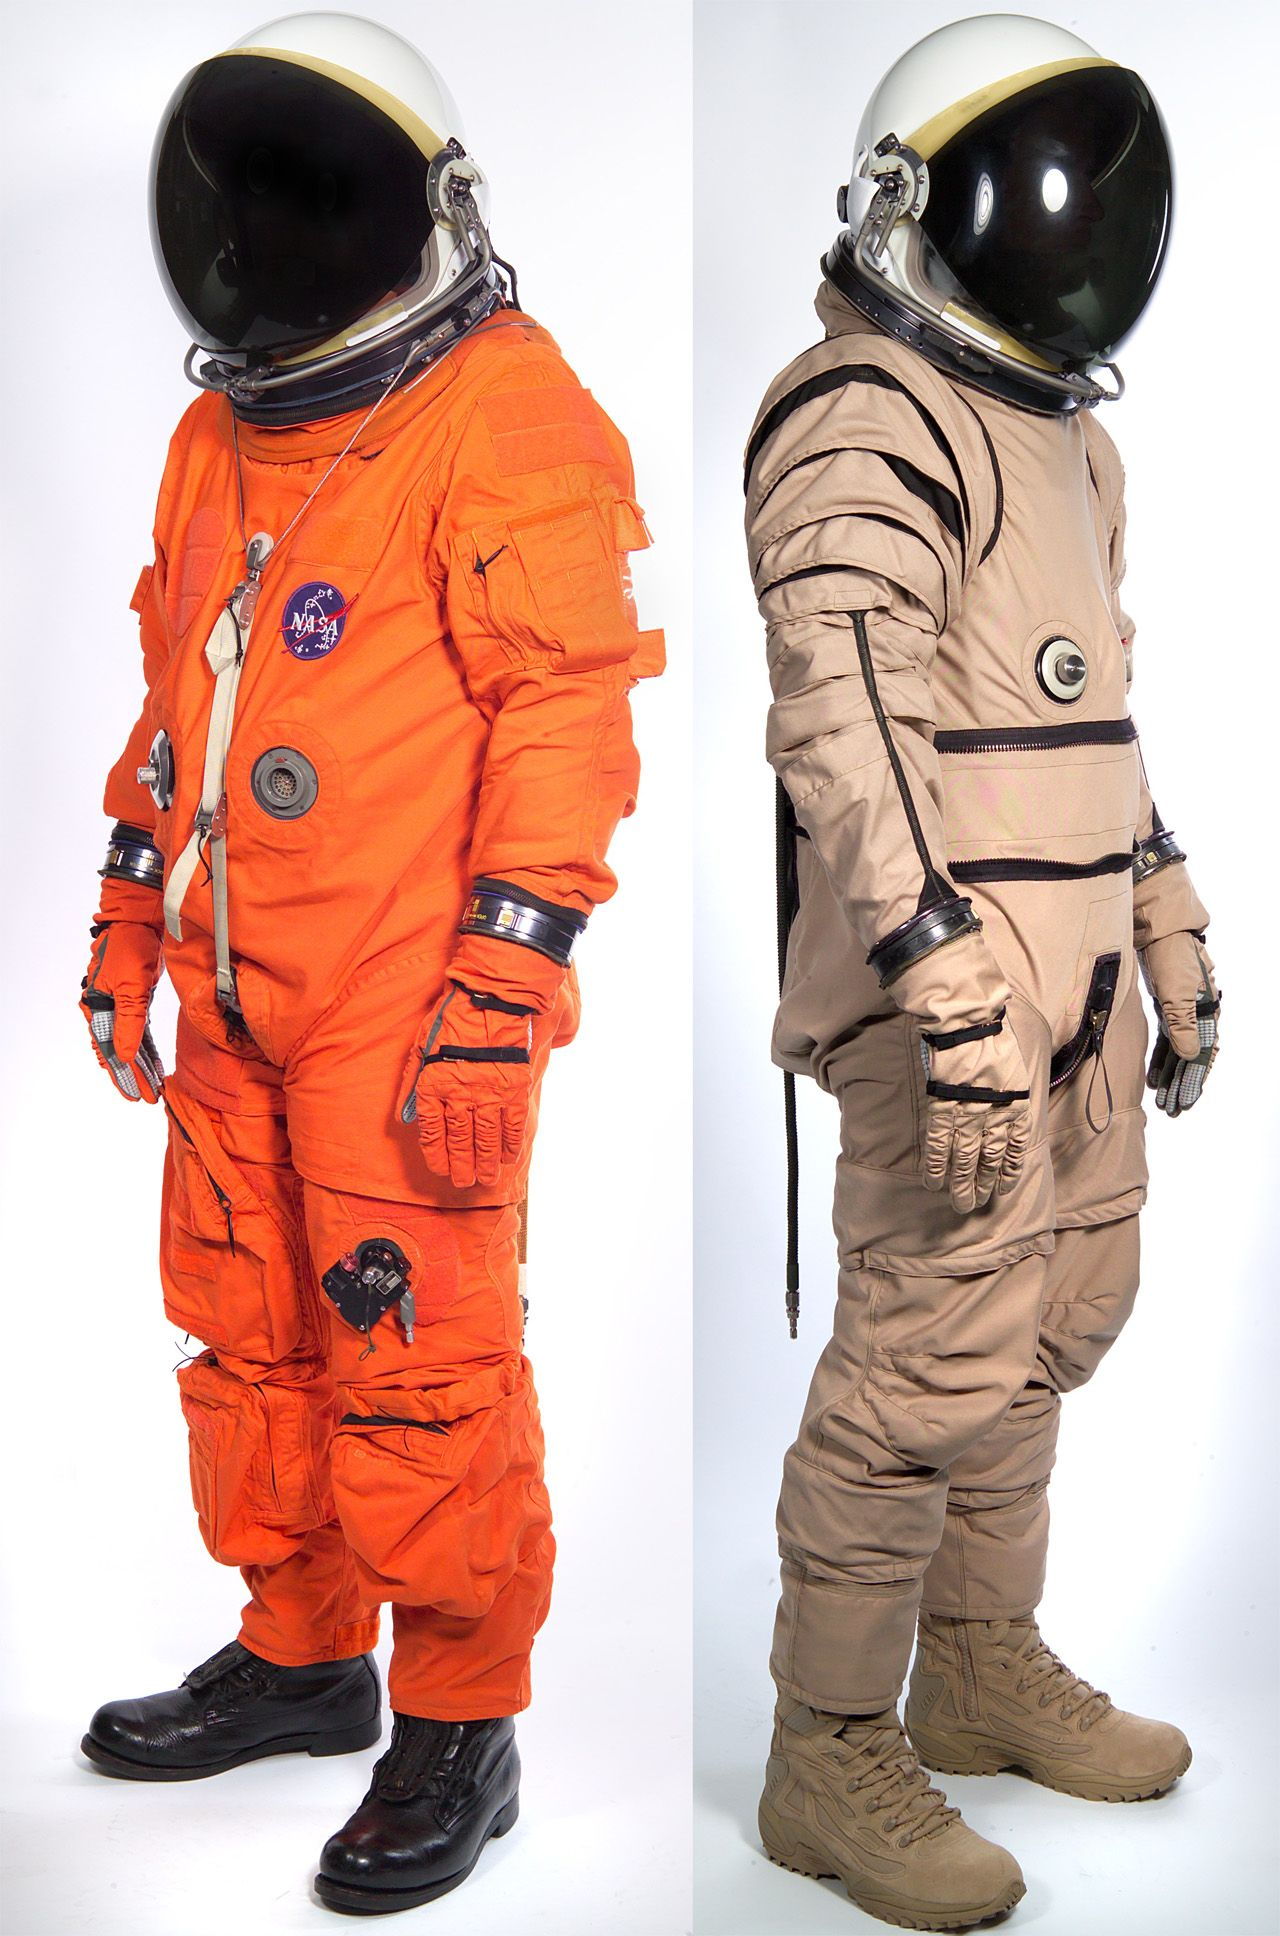 endver of space suits - photo #9